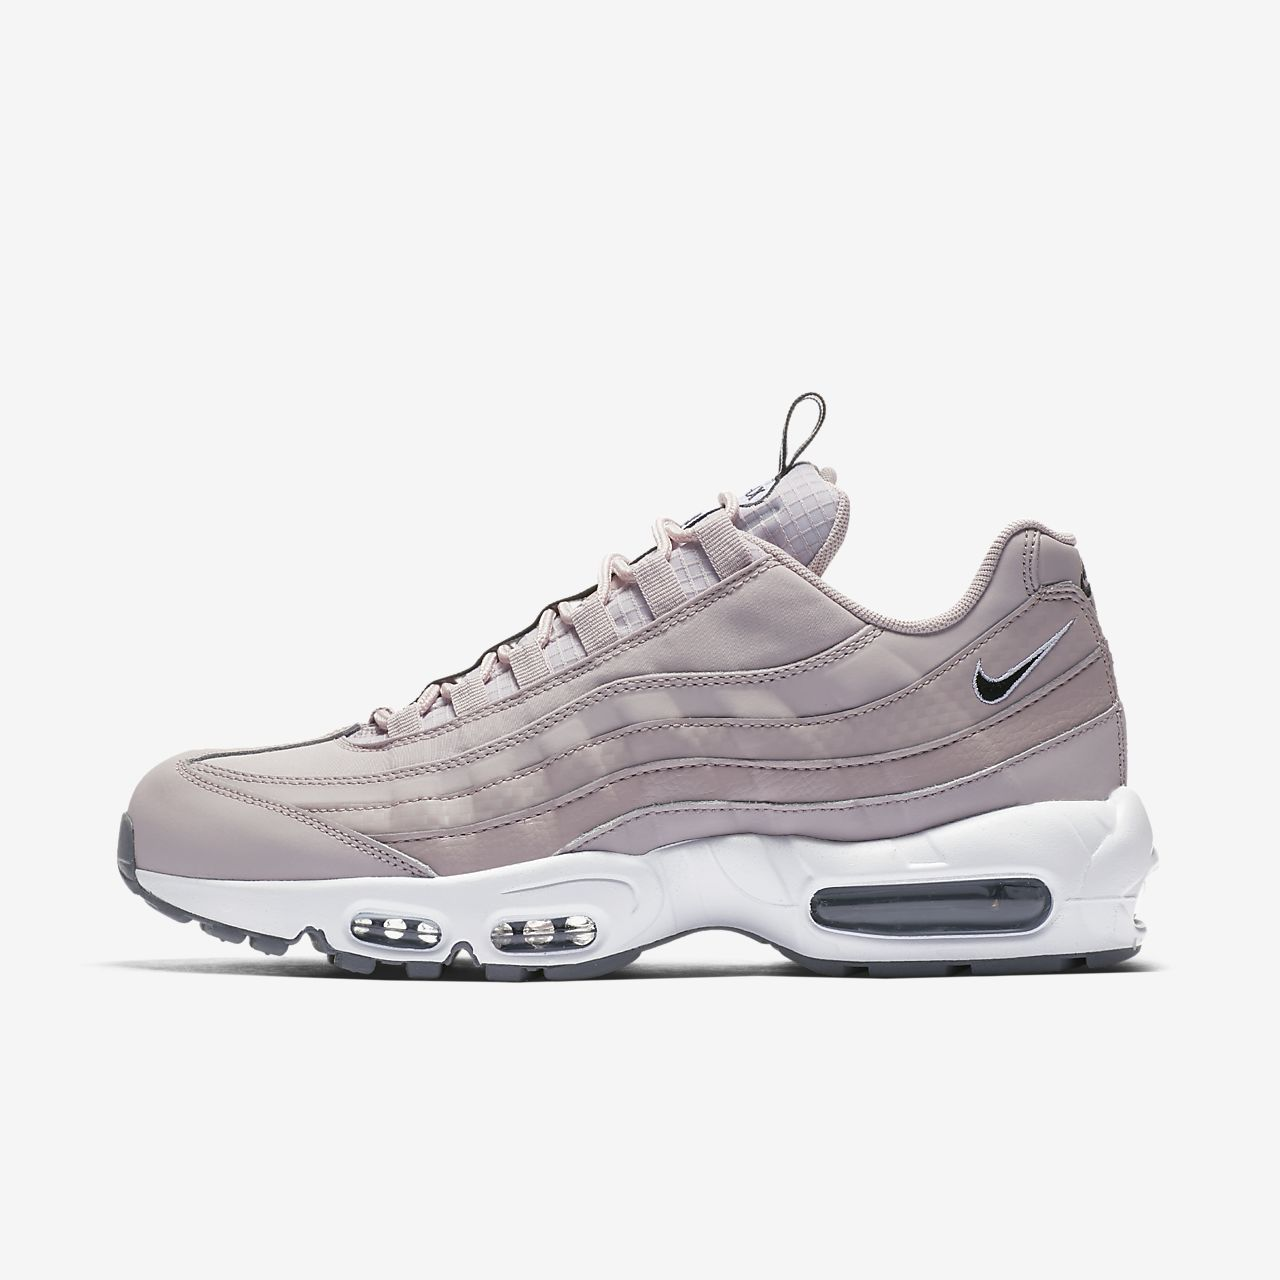 Nike Air Max 95 SE Mens Shoe